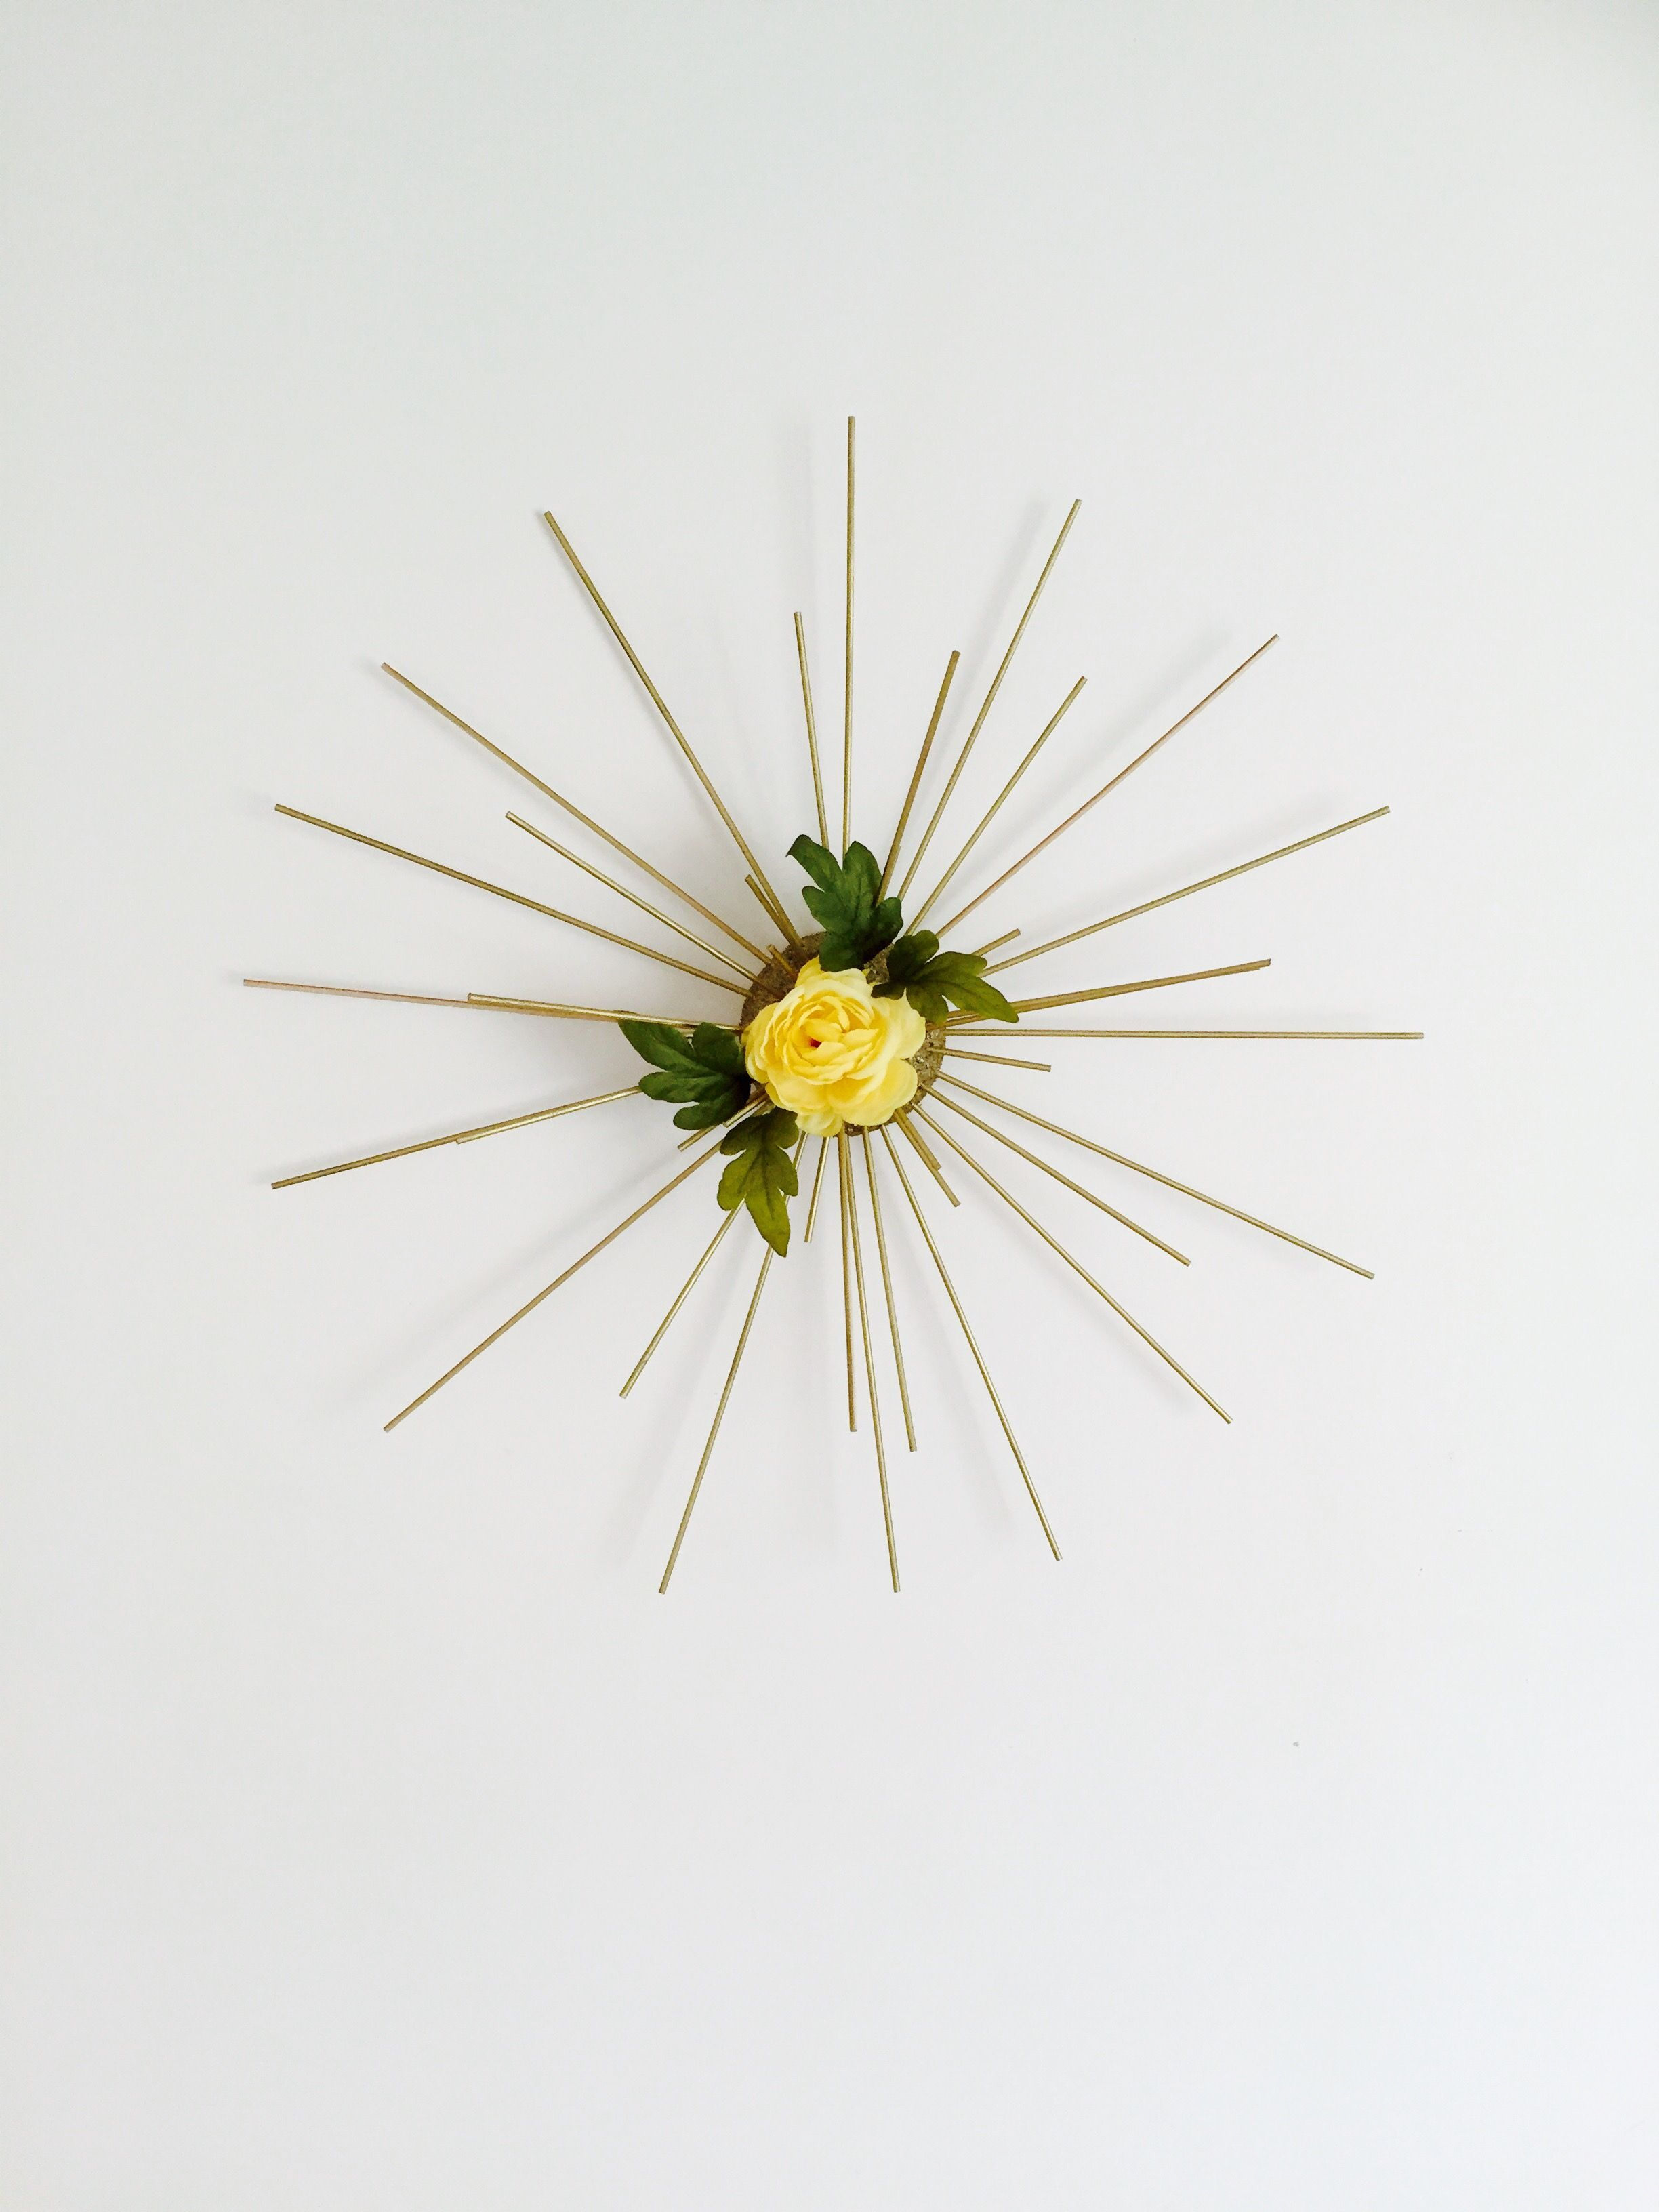 Spring sunburst new craft ideas pinterest craft